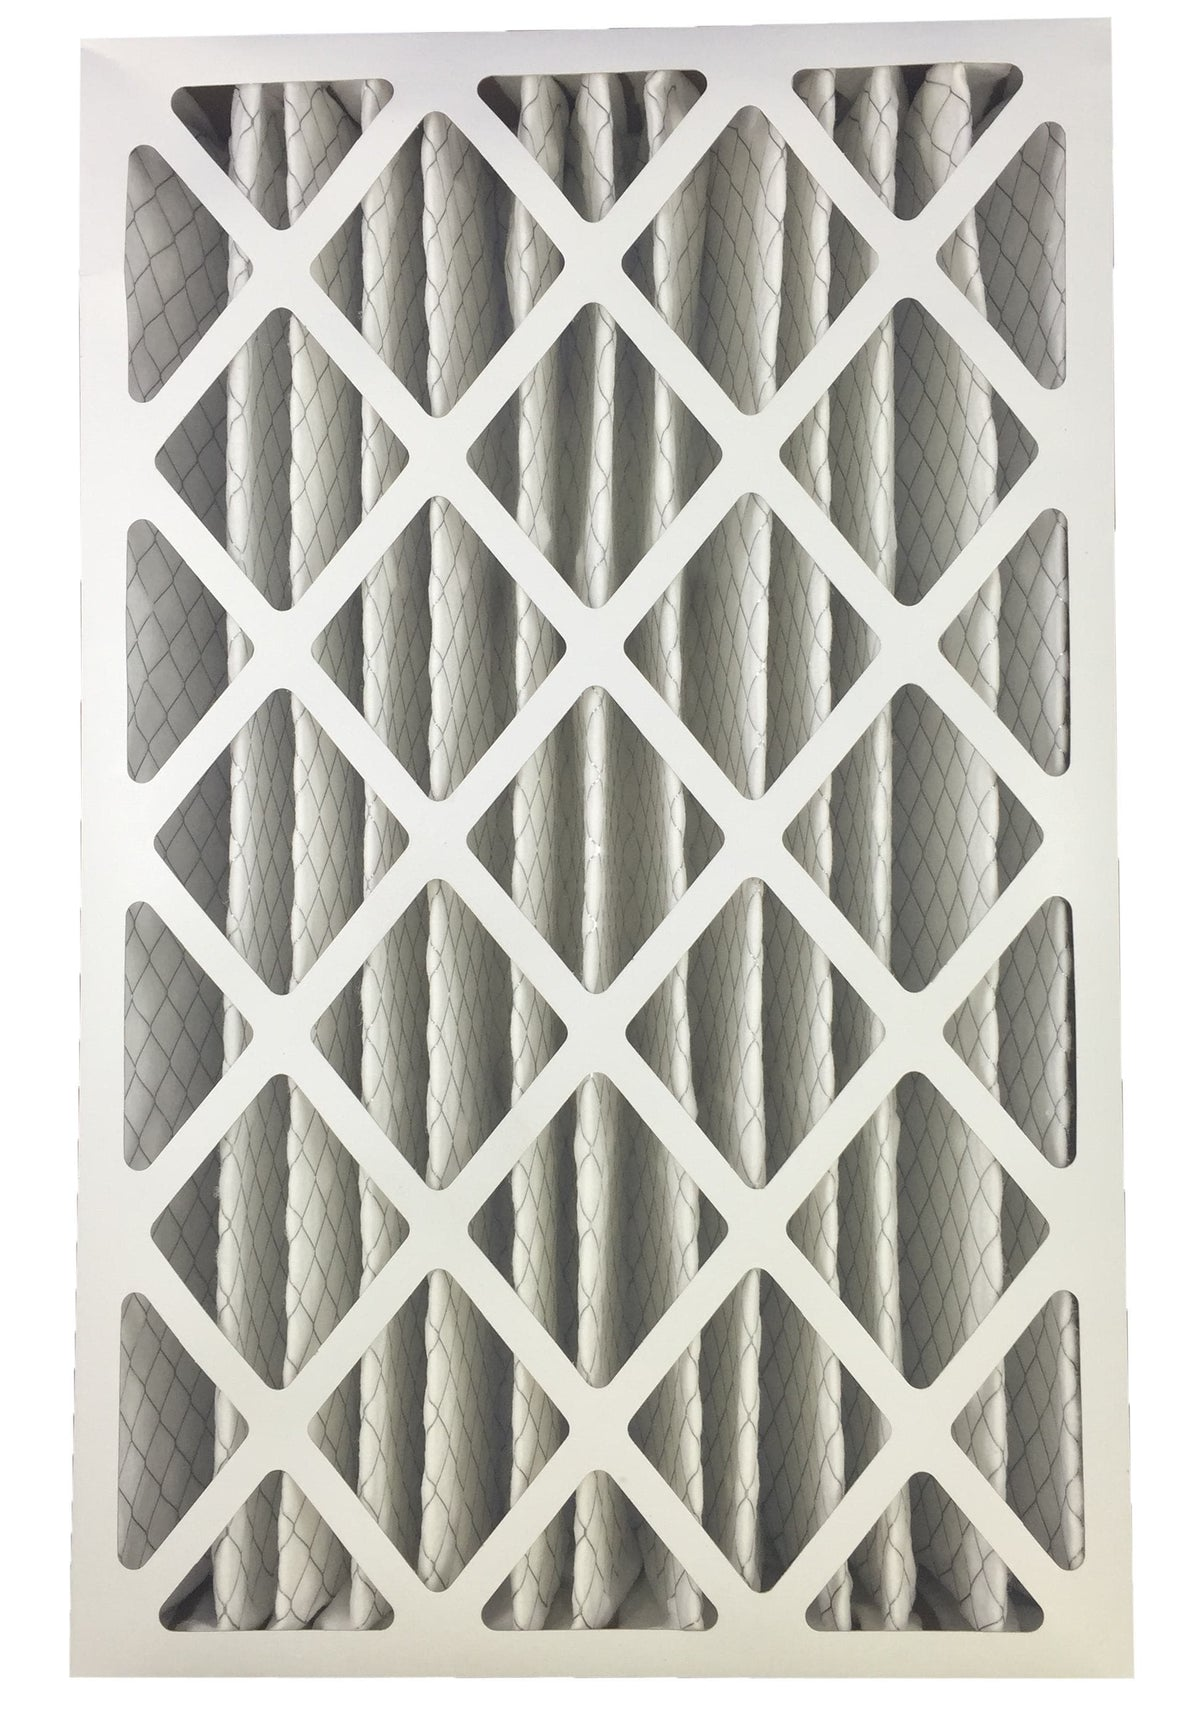 Atomic FC200E1029 16x25x5 Honeywell Replacement MERV 13 Air Filter - 2 Pack